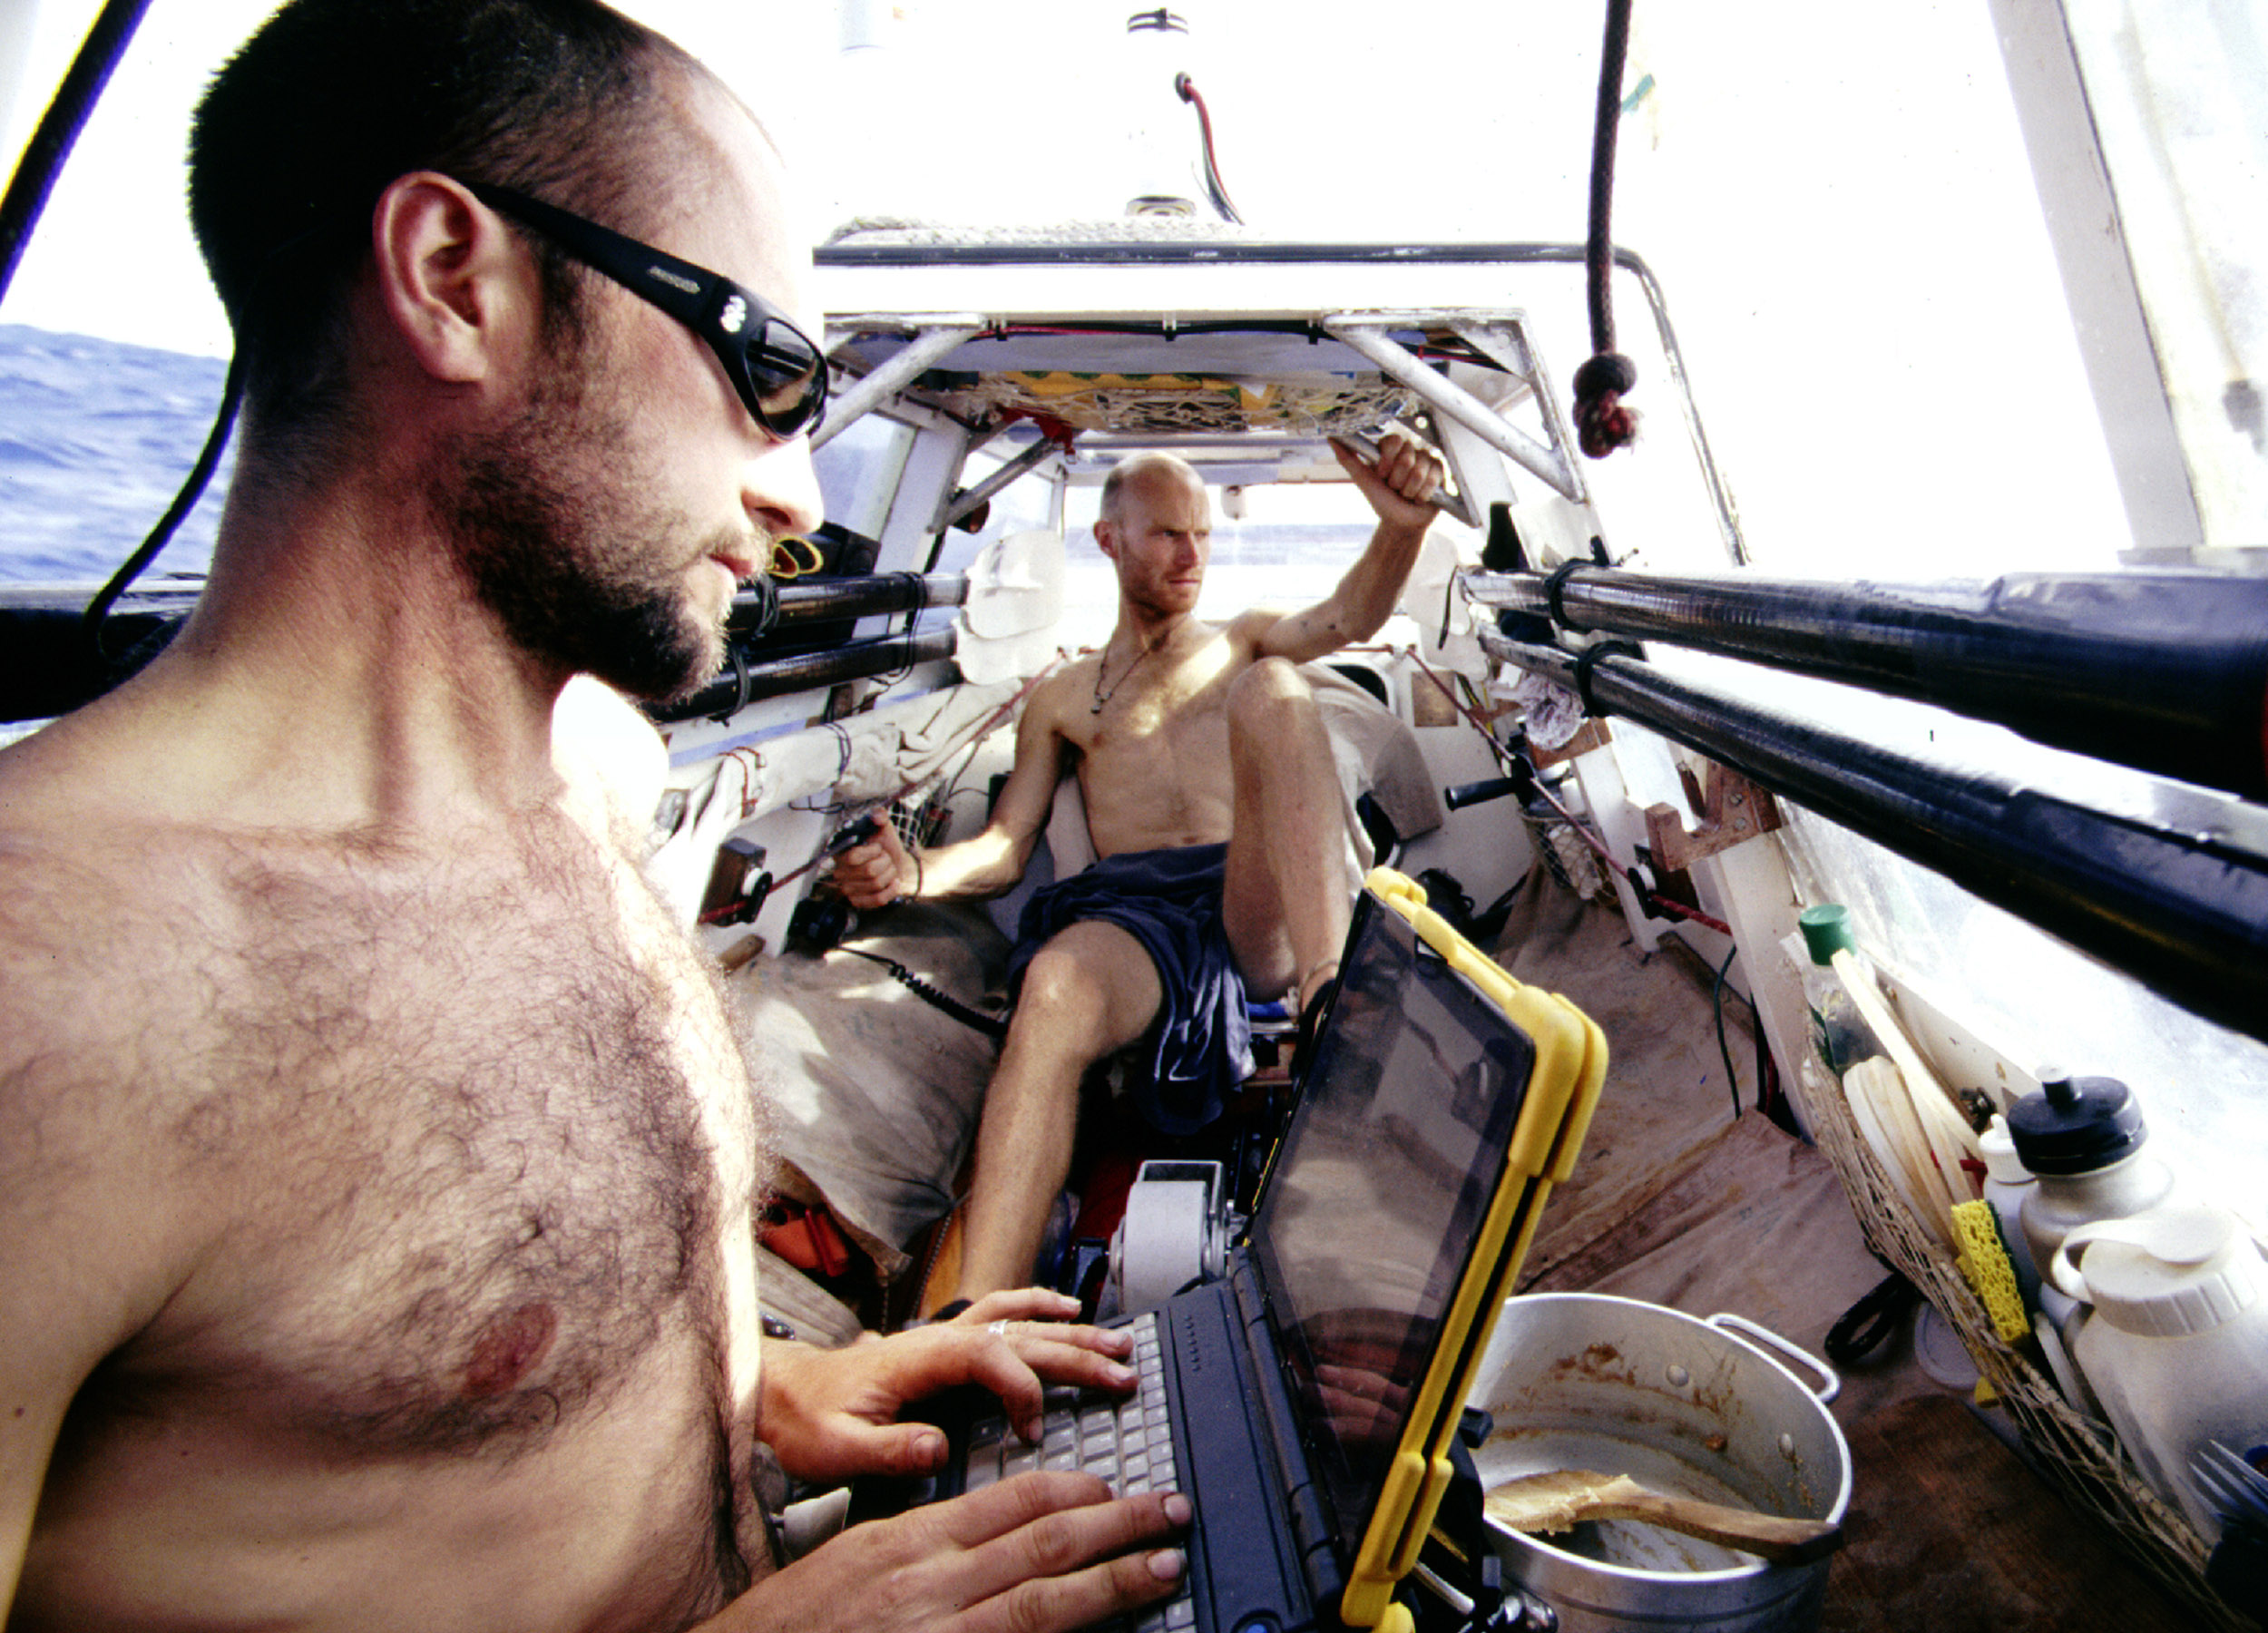 Two barechested men in a boat; one on a laptop, the other pedalling away